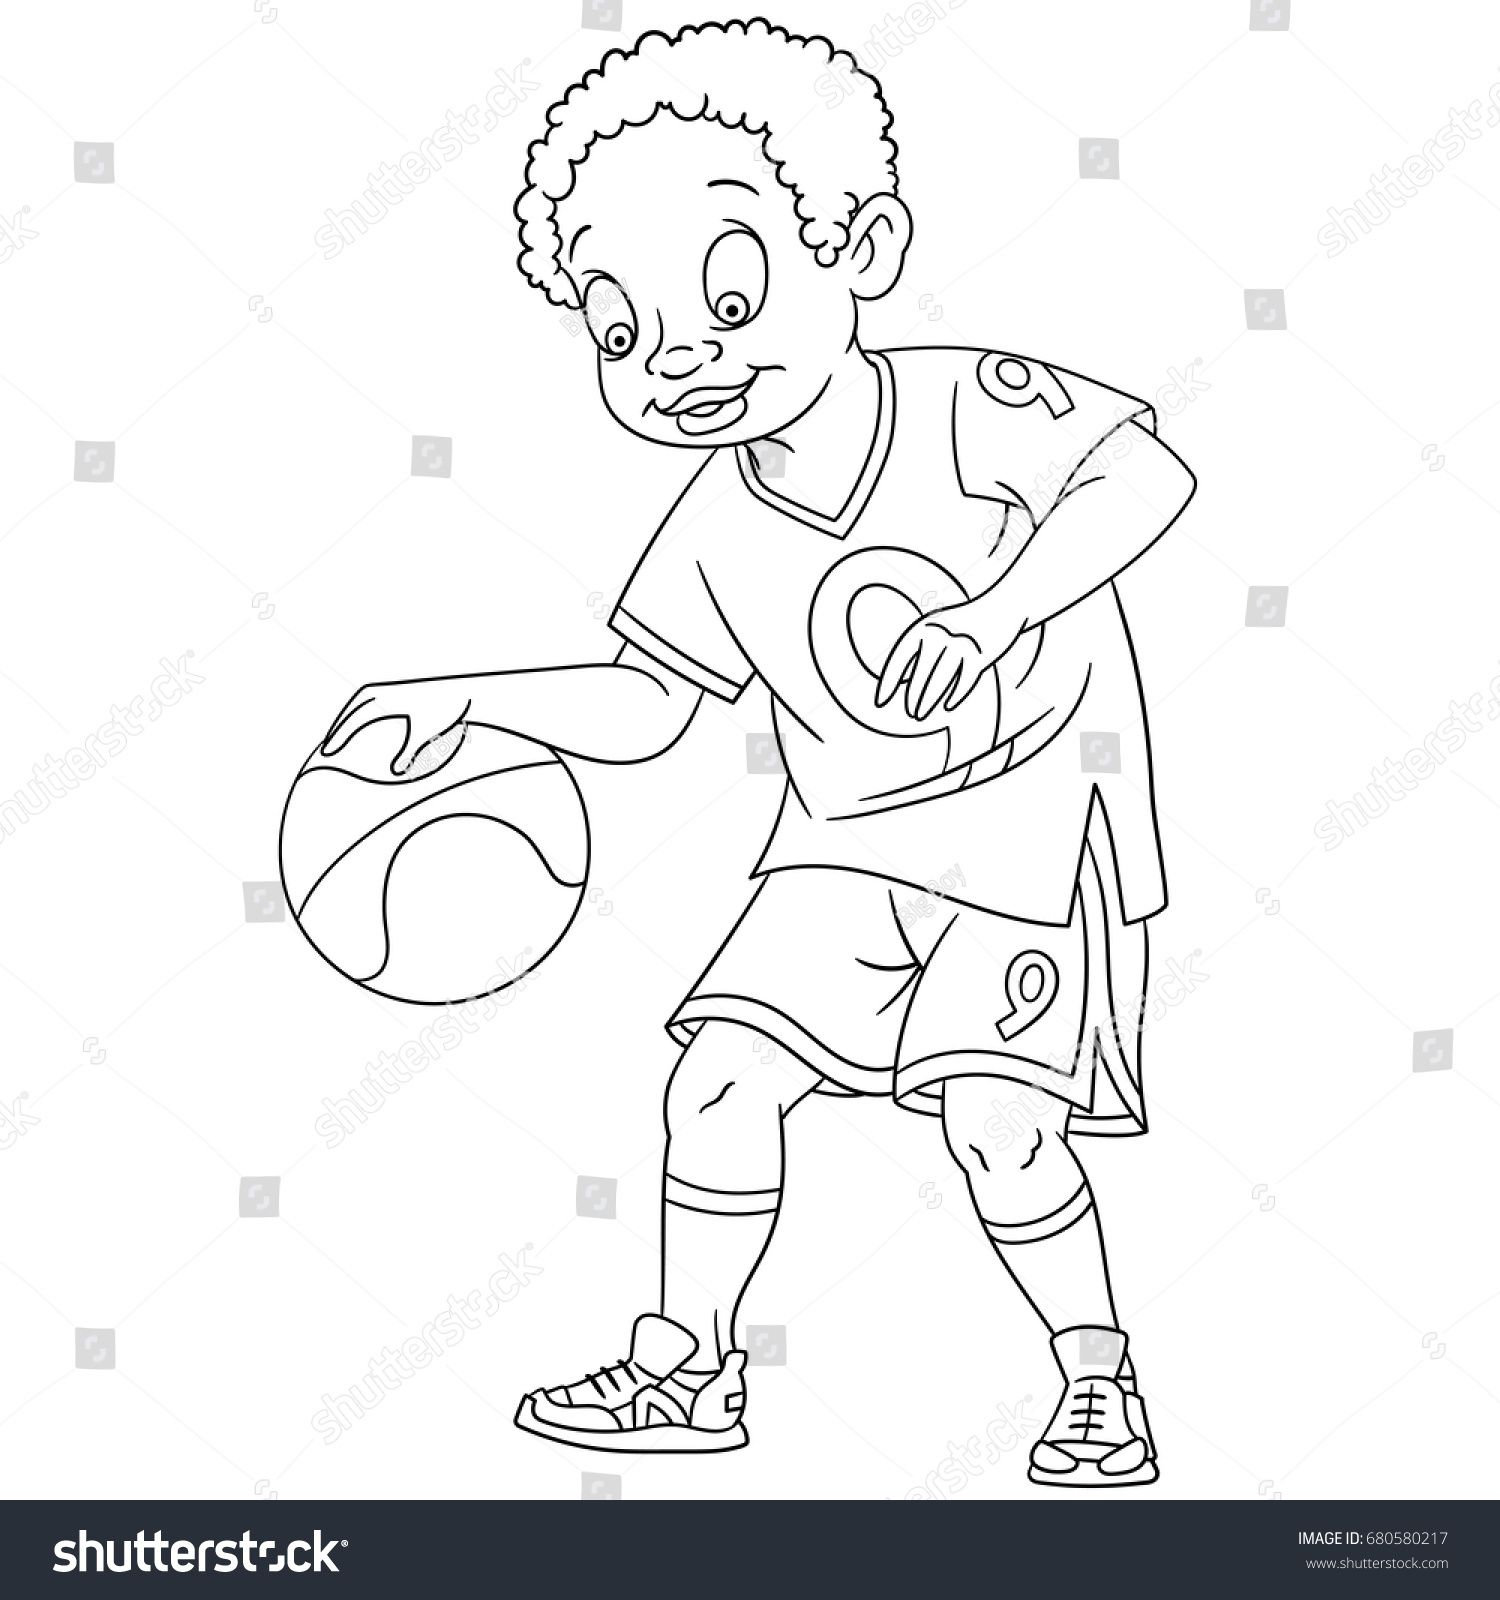 Coloring Page Of Boy Playing Basketball Colouring Book For Kids And Children Cartoon Vector Illustration Boys Playing Cartoon Illustration Coloring Pages